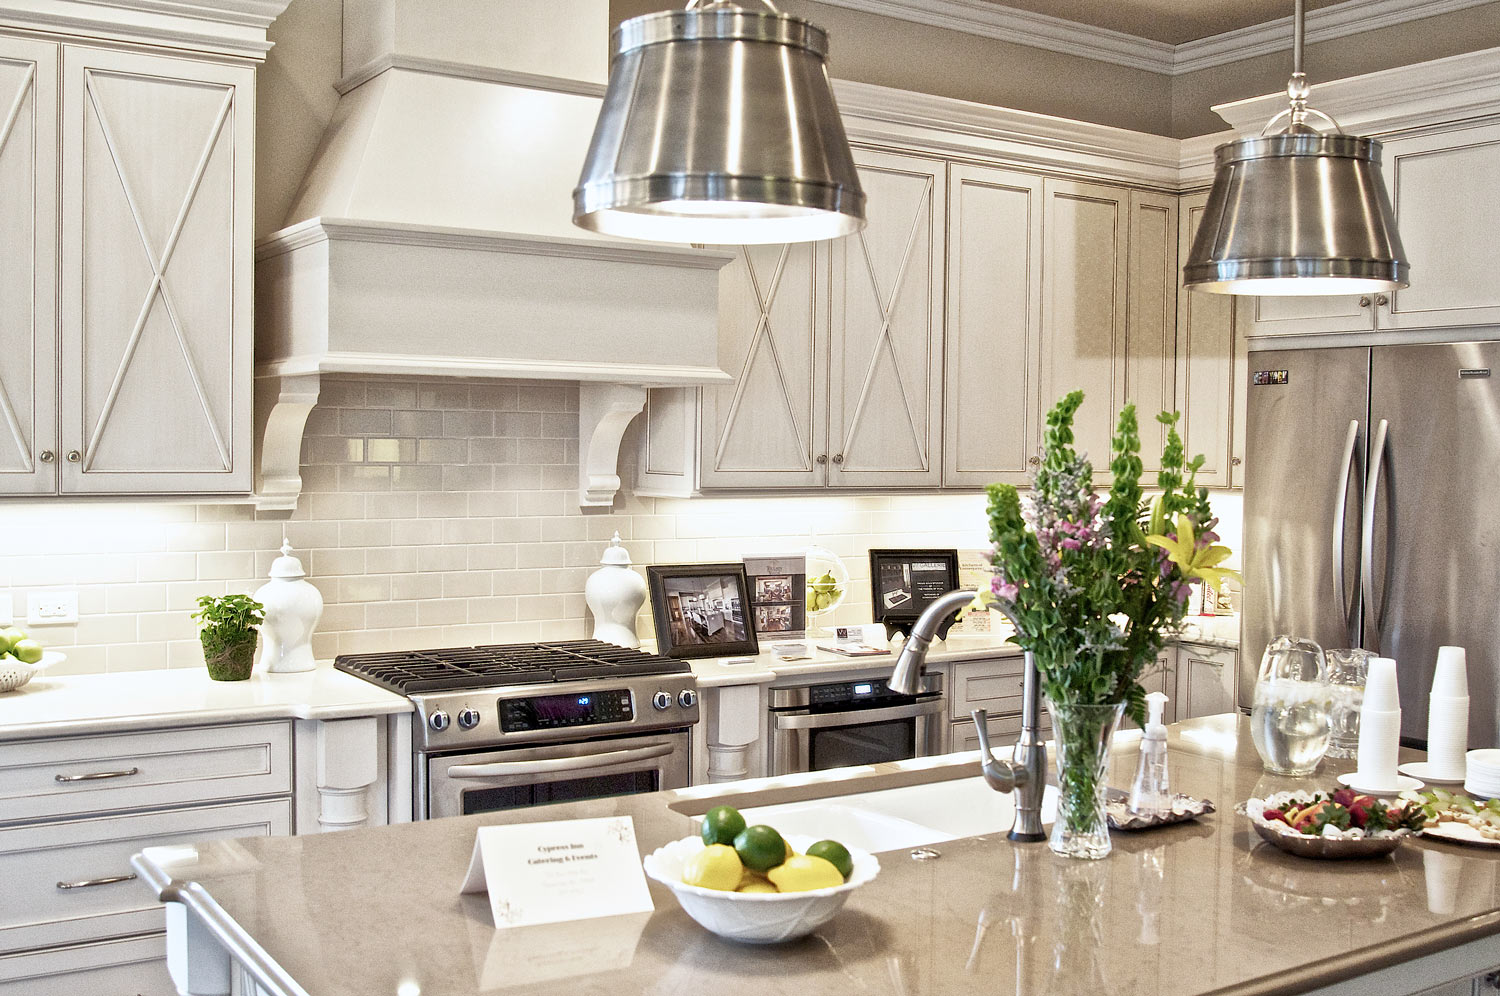 Kitchen design for a home located in The Downs, Tuscaloosa, AL